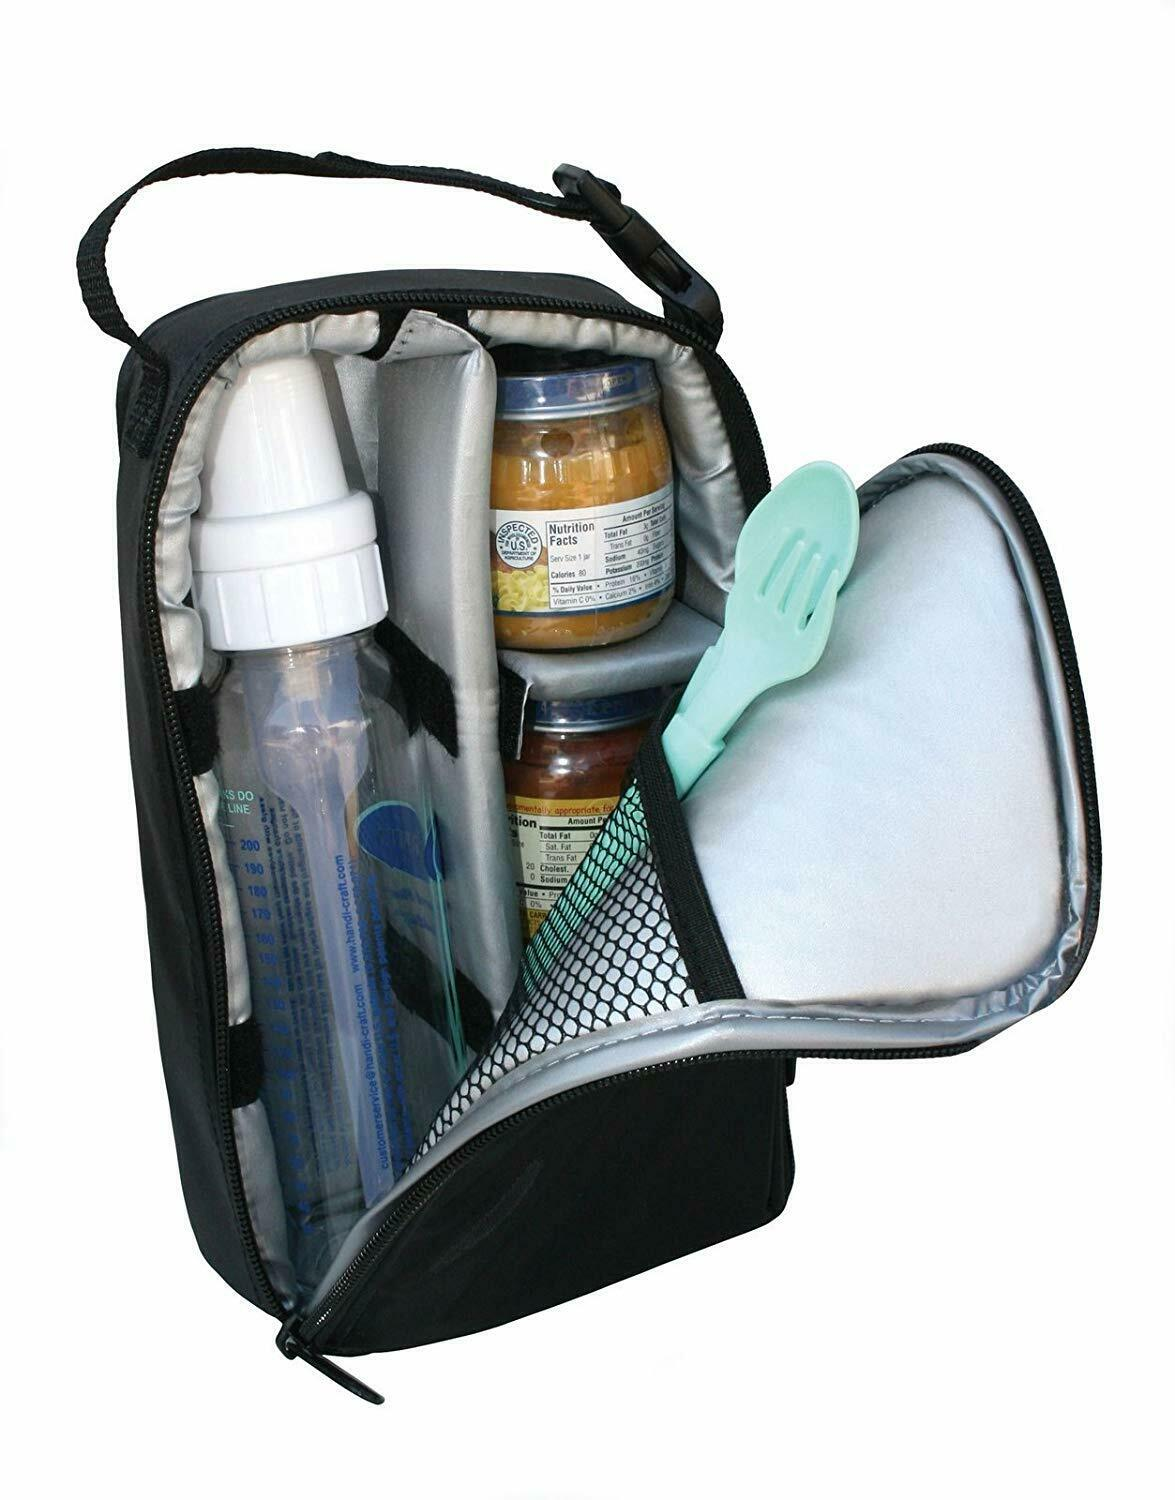 J.L. Childress Pack 'N Protect, Insulated Cooler Bag for Gla